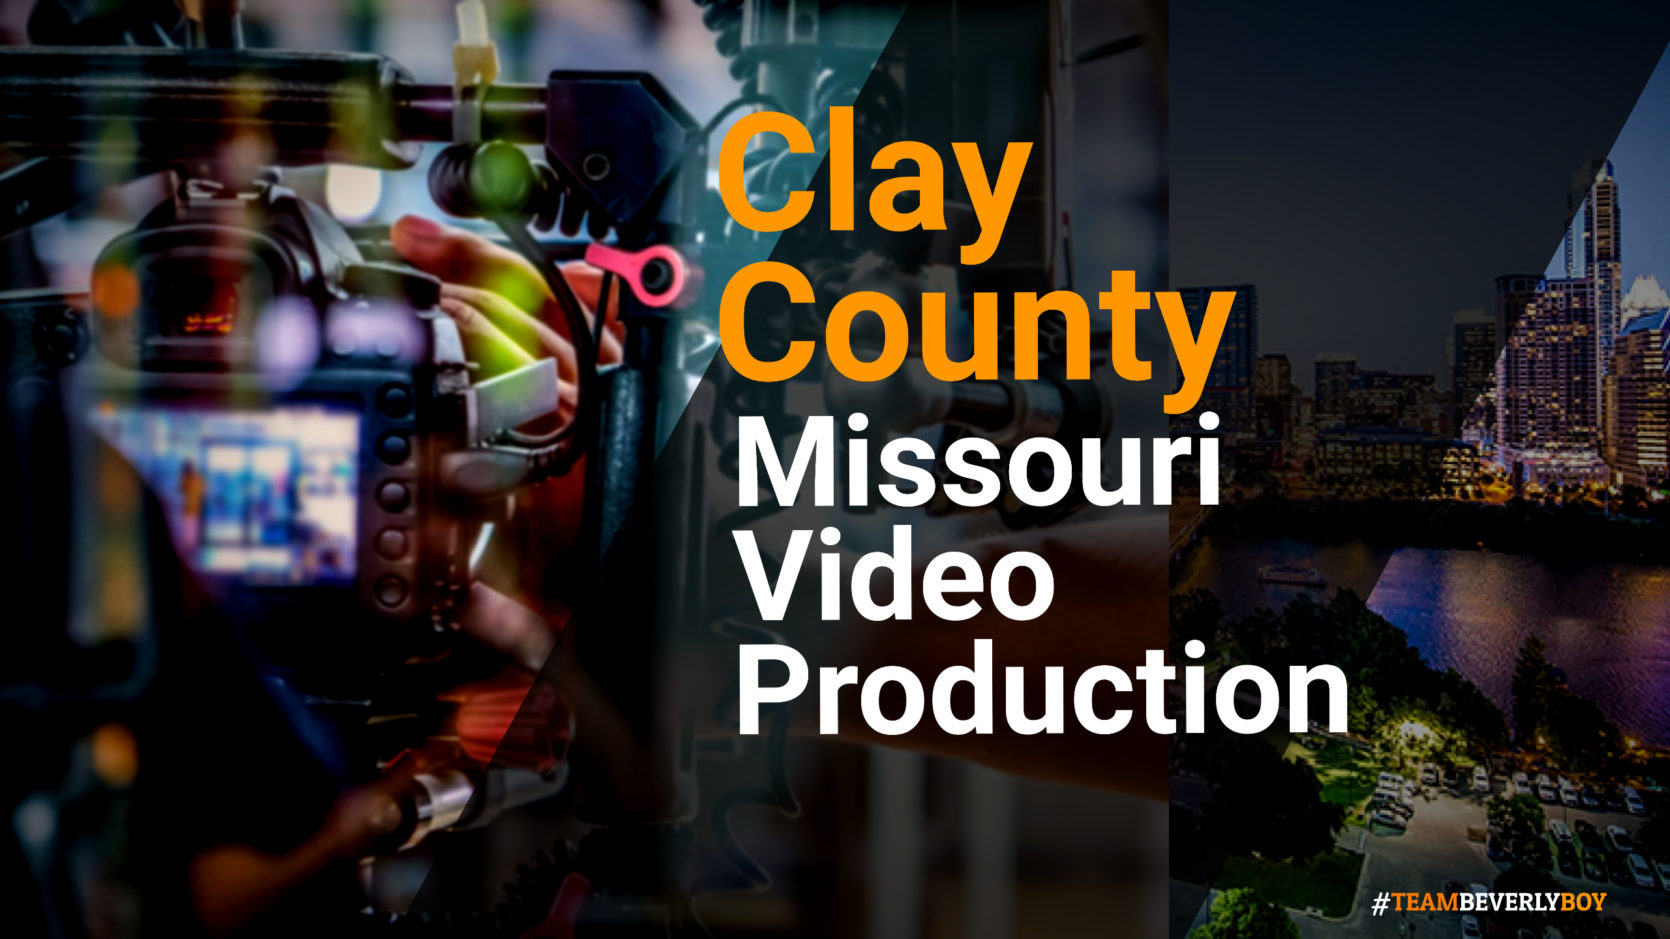 Clay County MO video production (1)